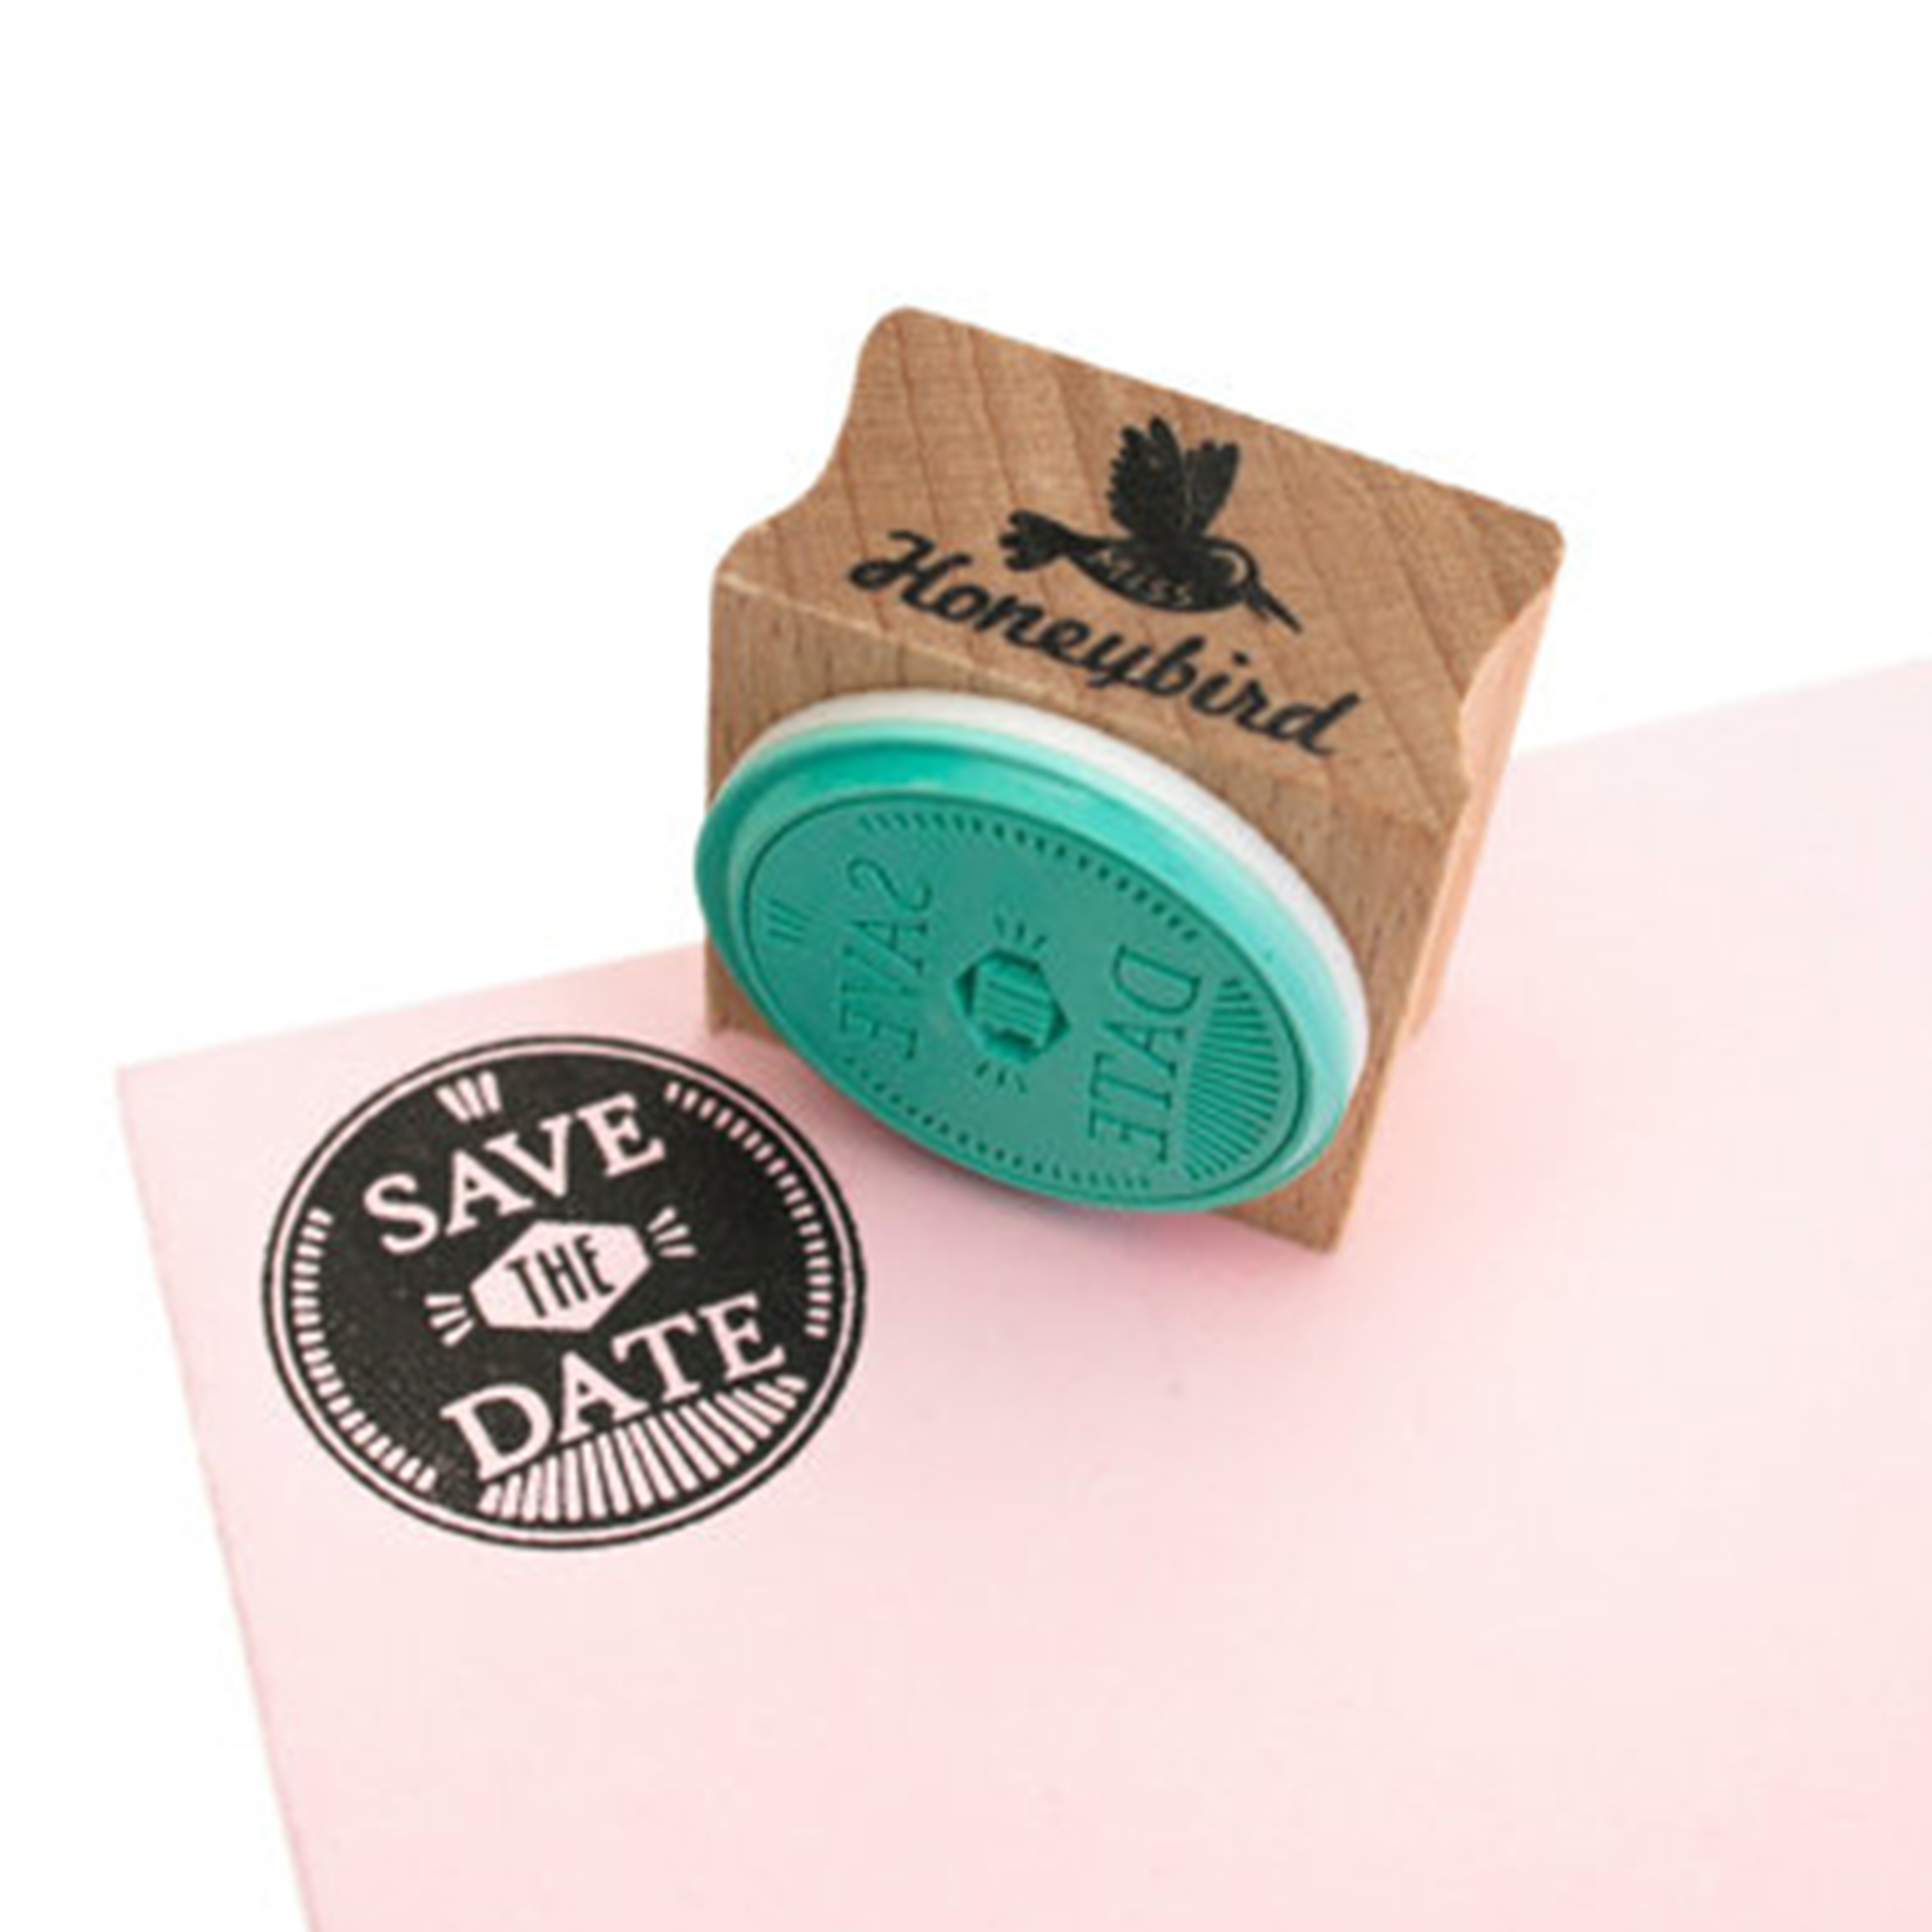 Mmiss-honey-bird-stempel